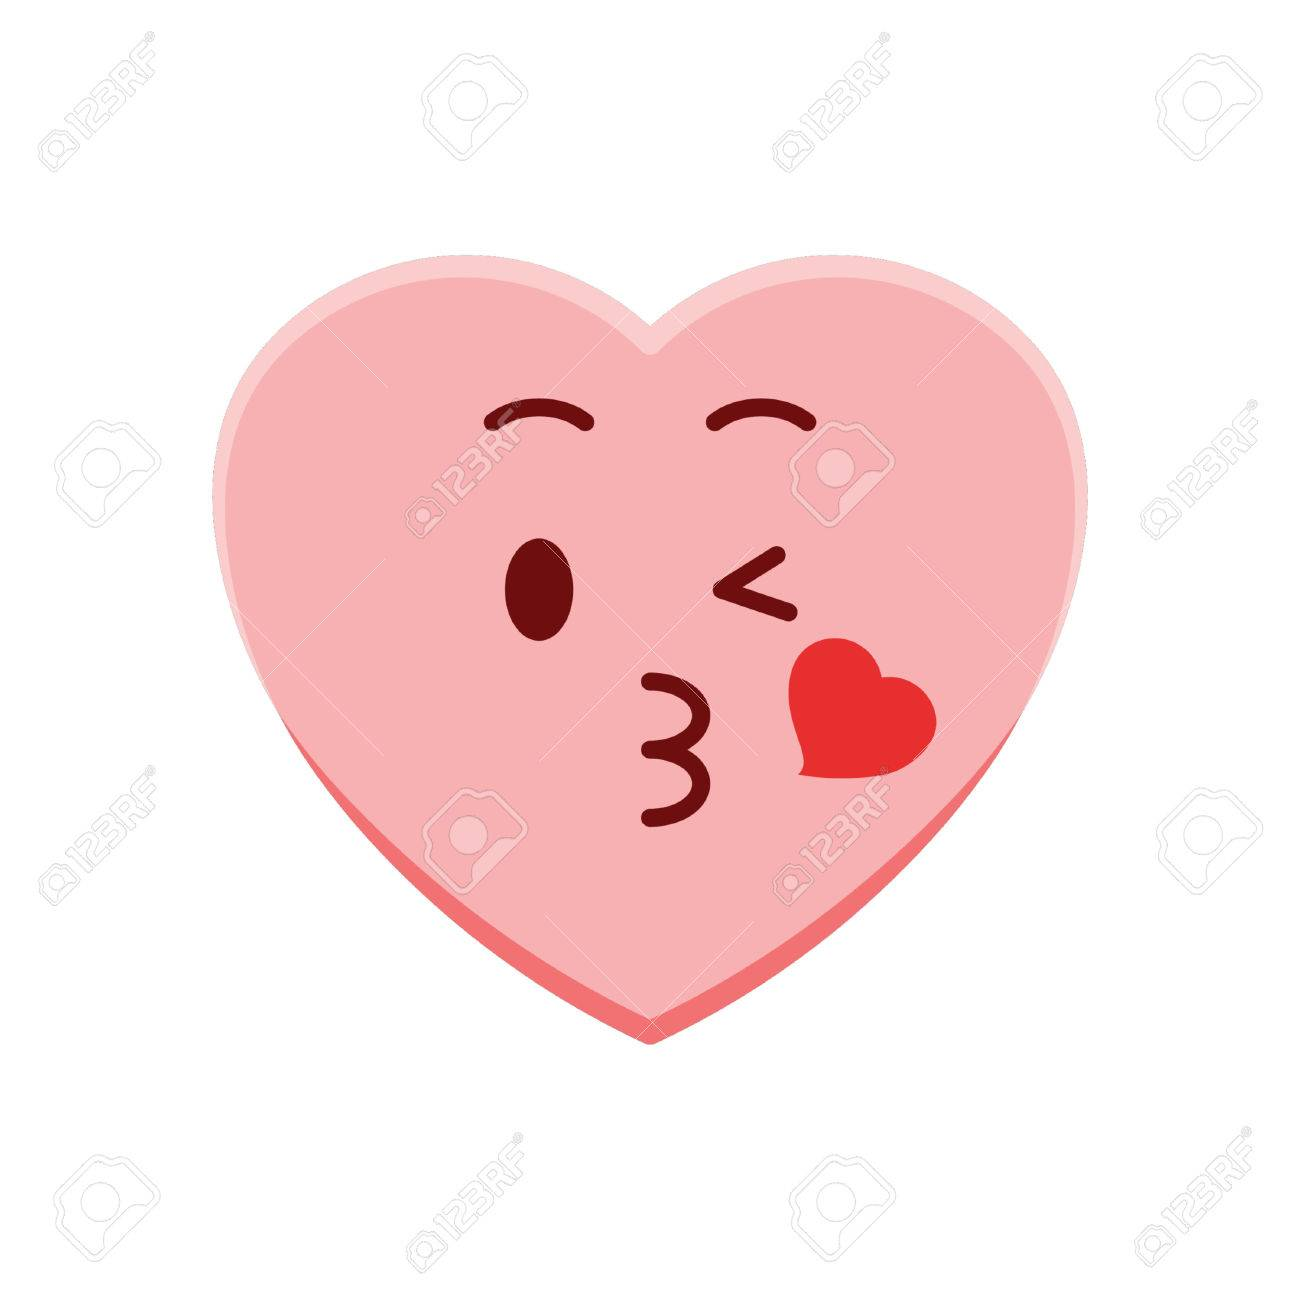 Heart Character Blowing A Kiss Royalty Free Cliparts Vectors And